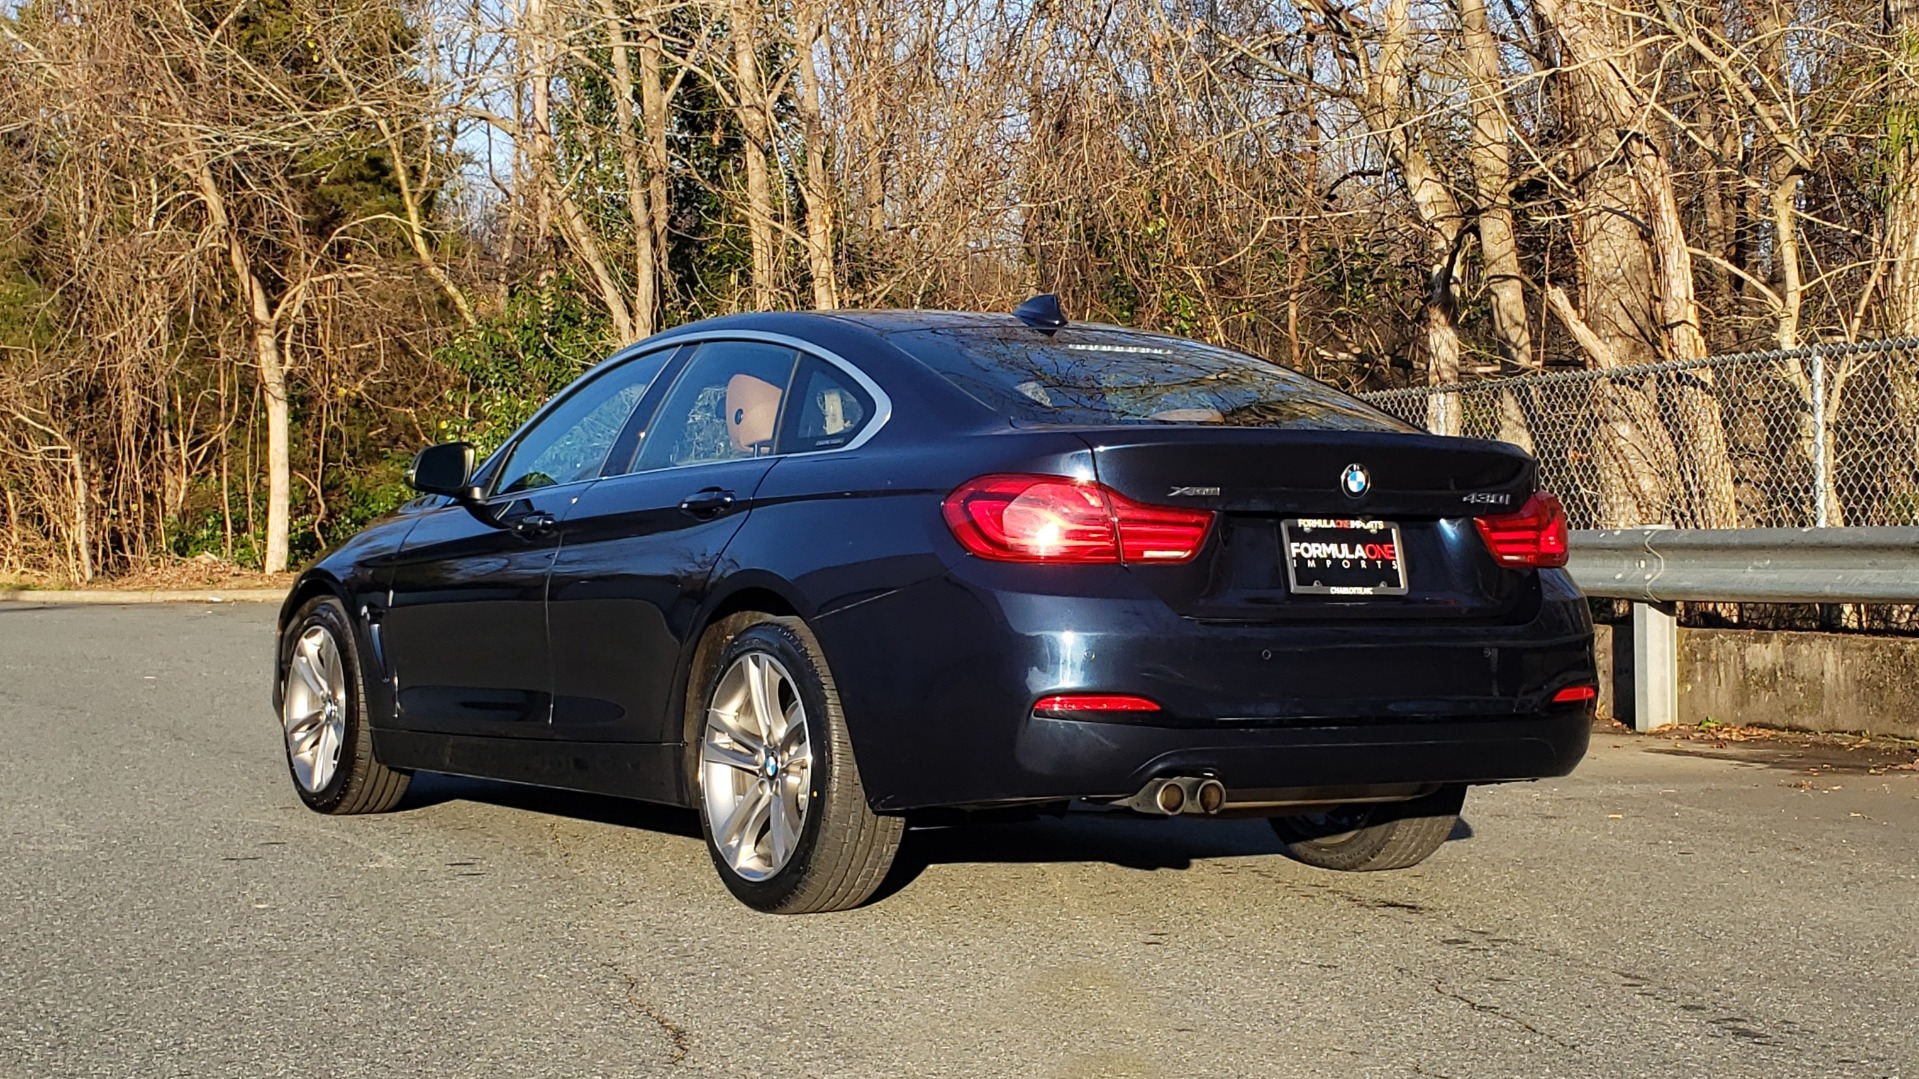 Used 2018 BMW 4 SERIES 430I XDRIVE PREMIUM / NAV / APPLE CAR PLAY / ESSENTIALS / HTD ST for sale Sold at Formula Imports in Charlotte NC 28227 4